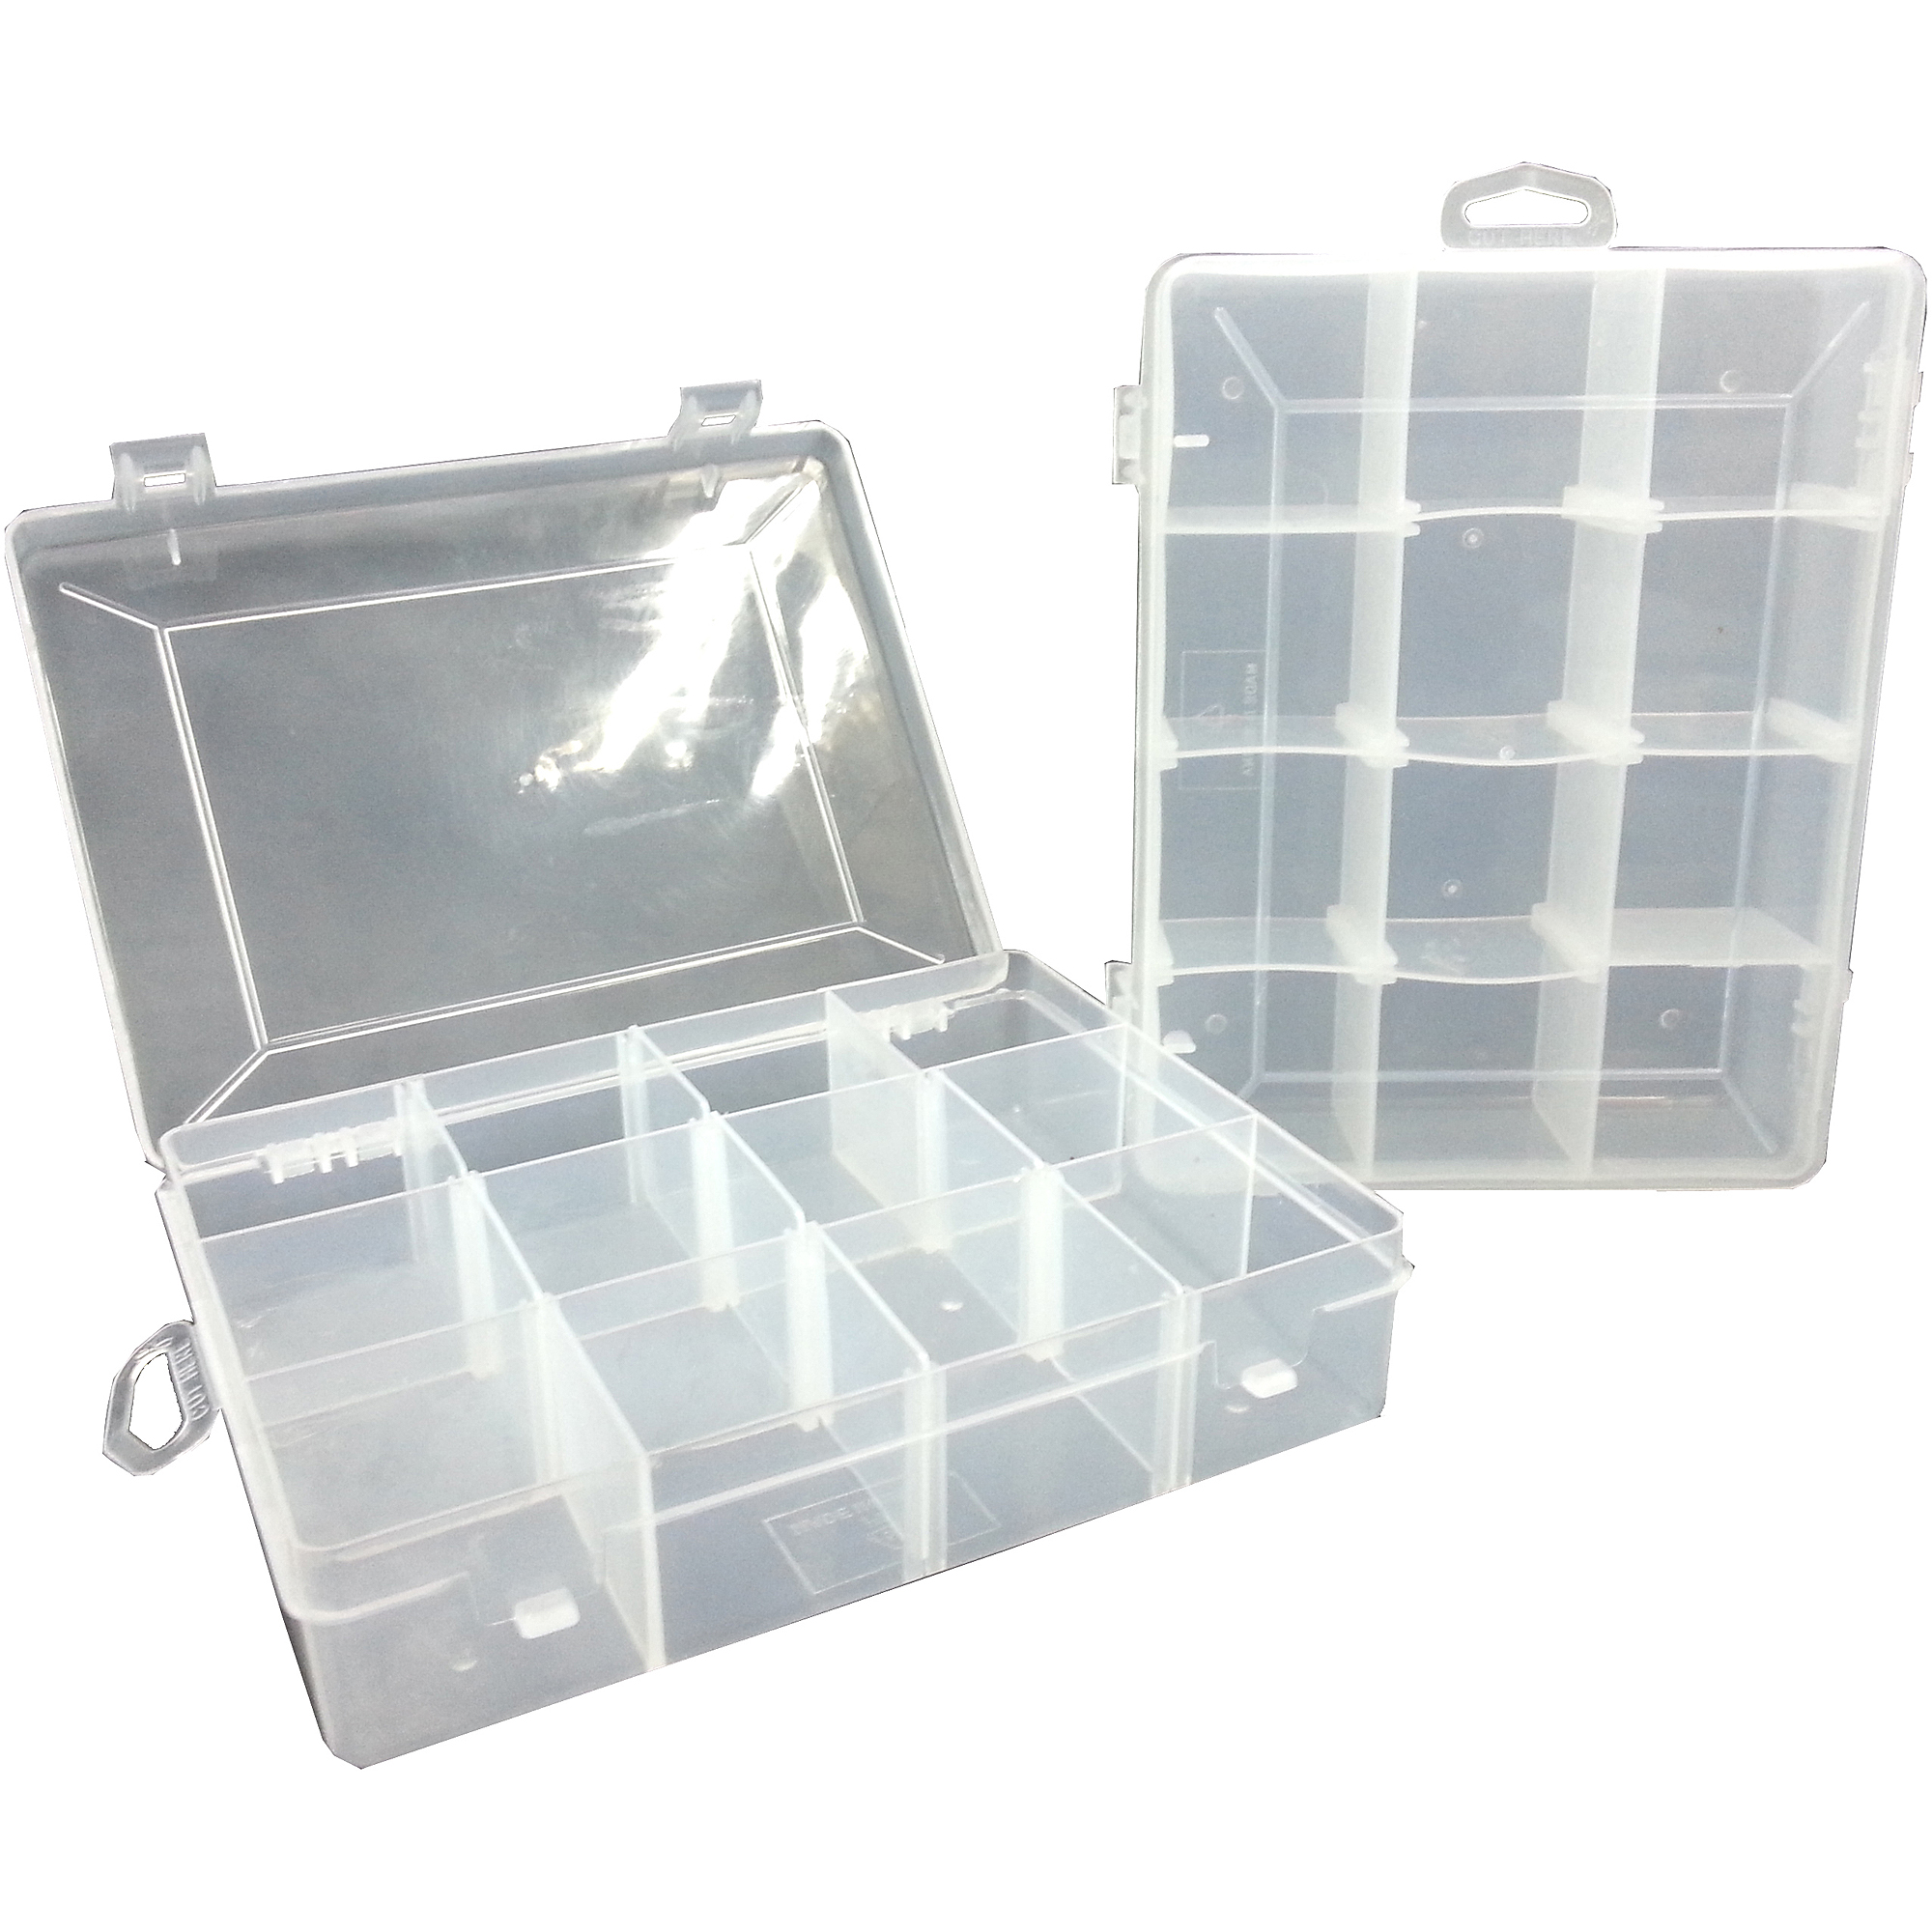 Utility Fishing Tackle Box, Small, 2-Pack